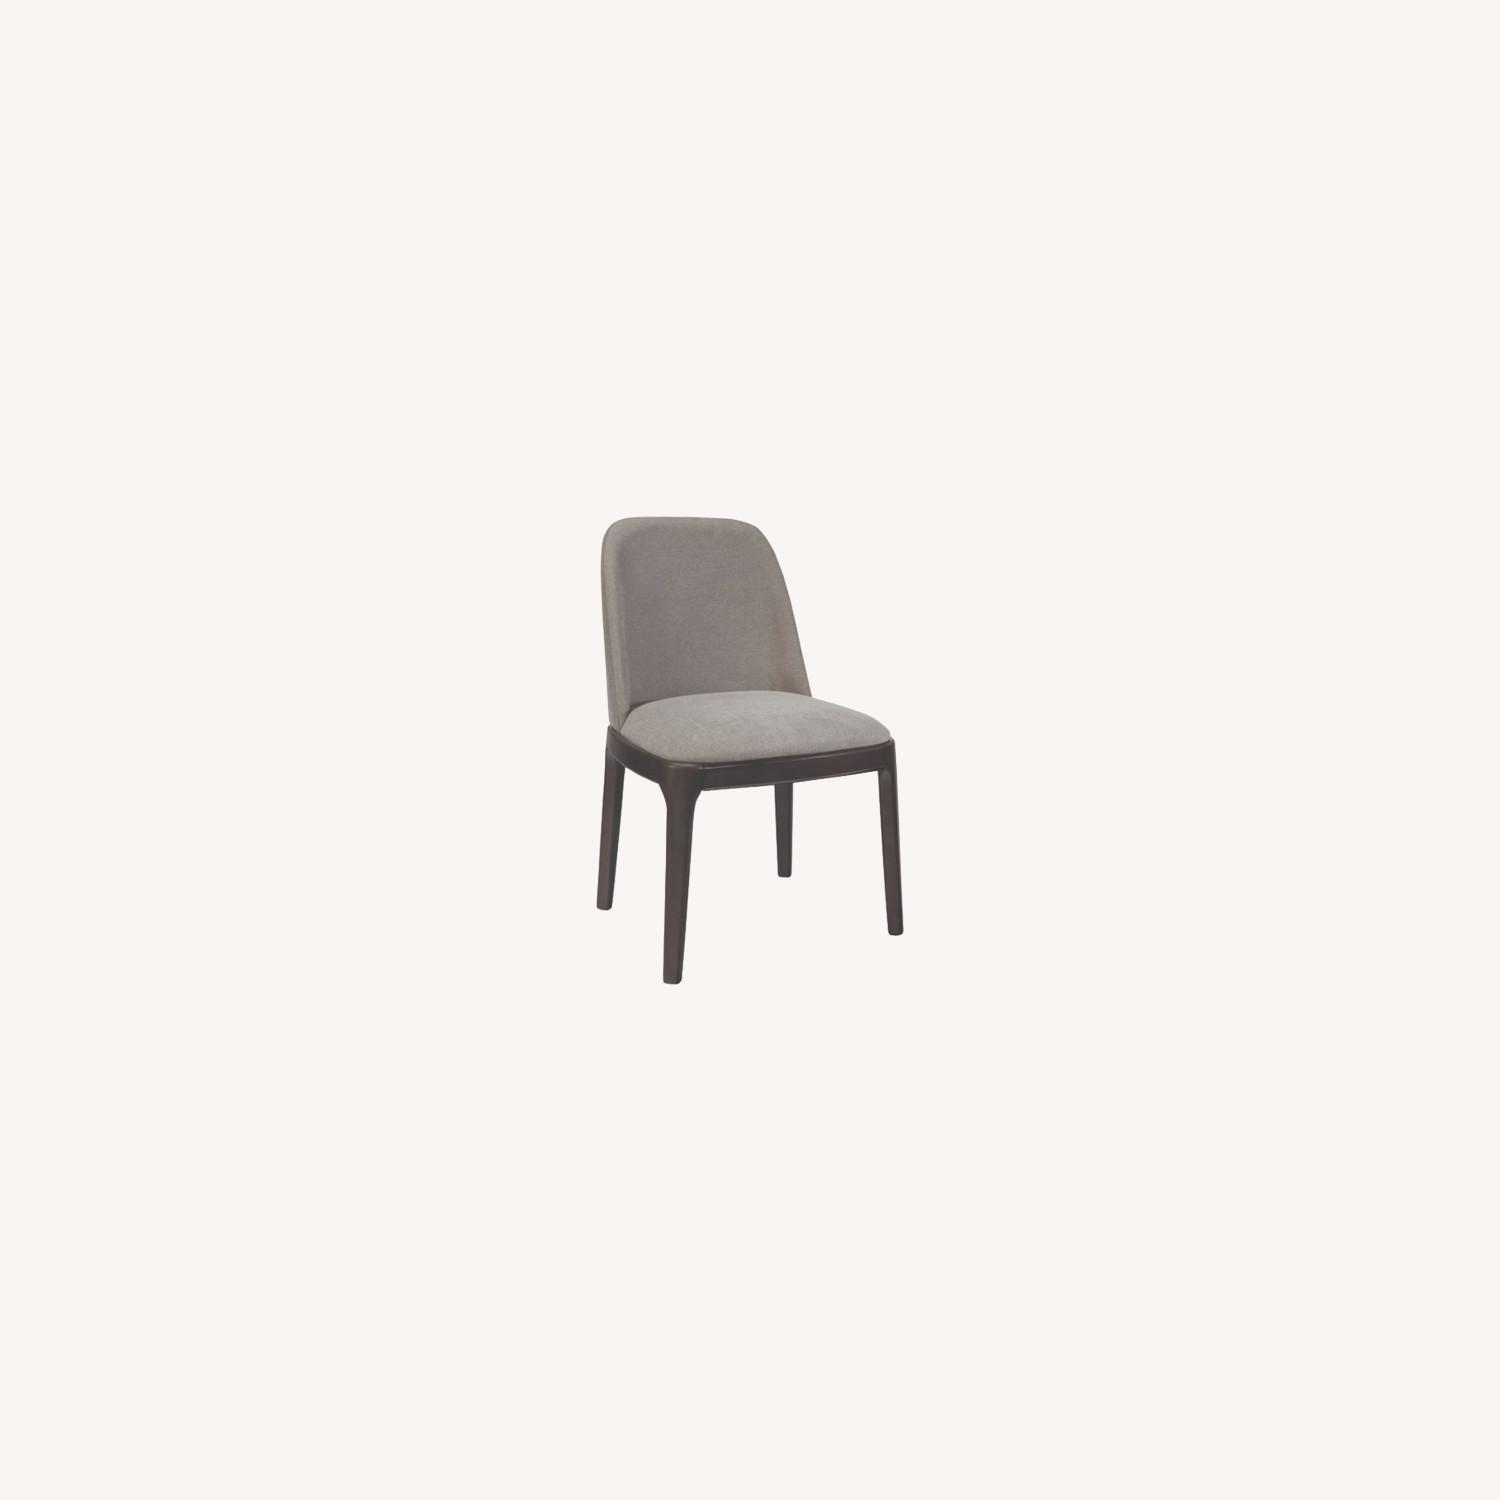 Contemporary Side Chair Upholstered In Grey Fabric - image-3